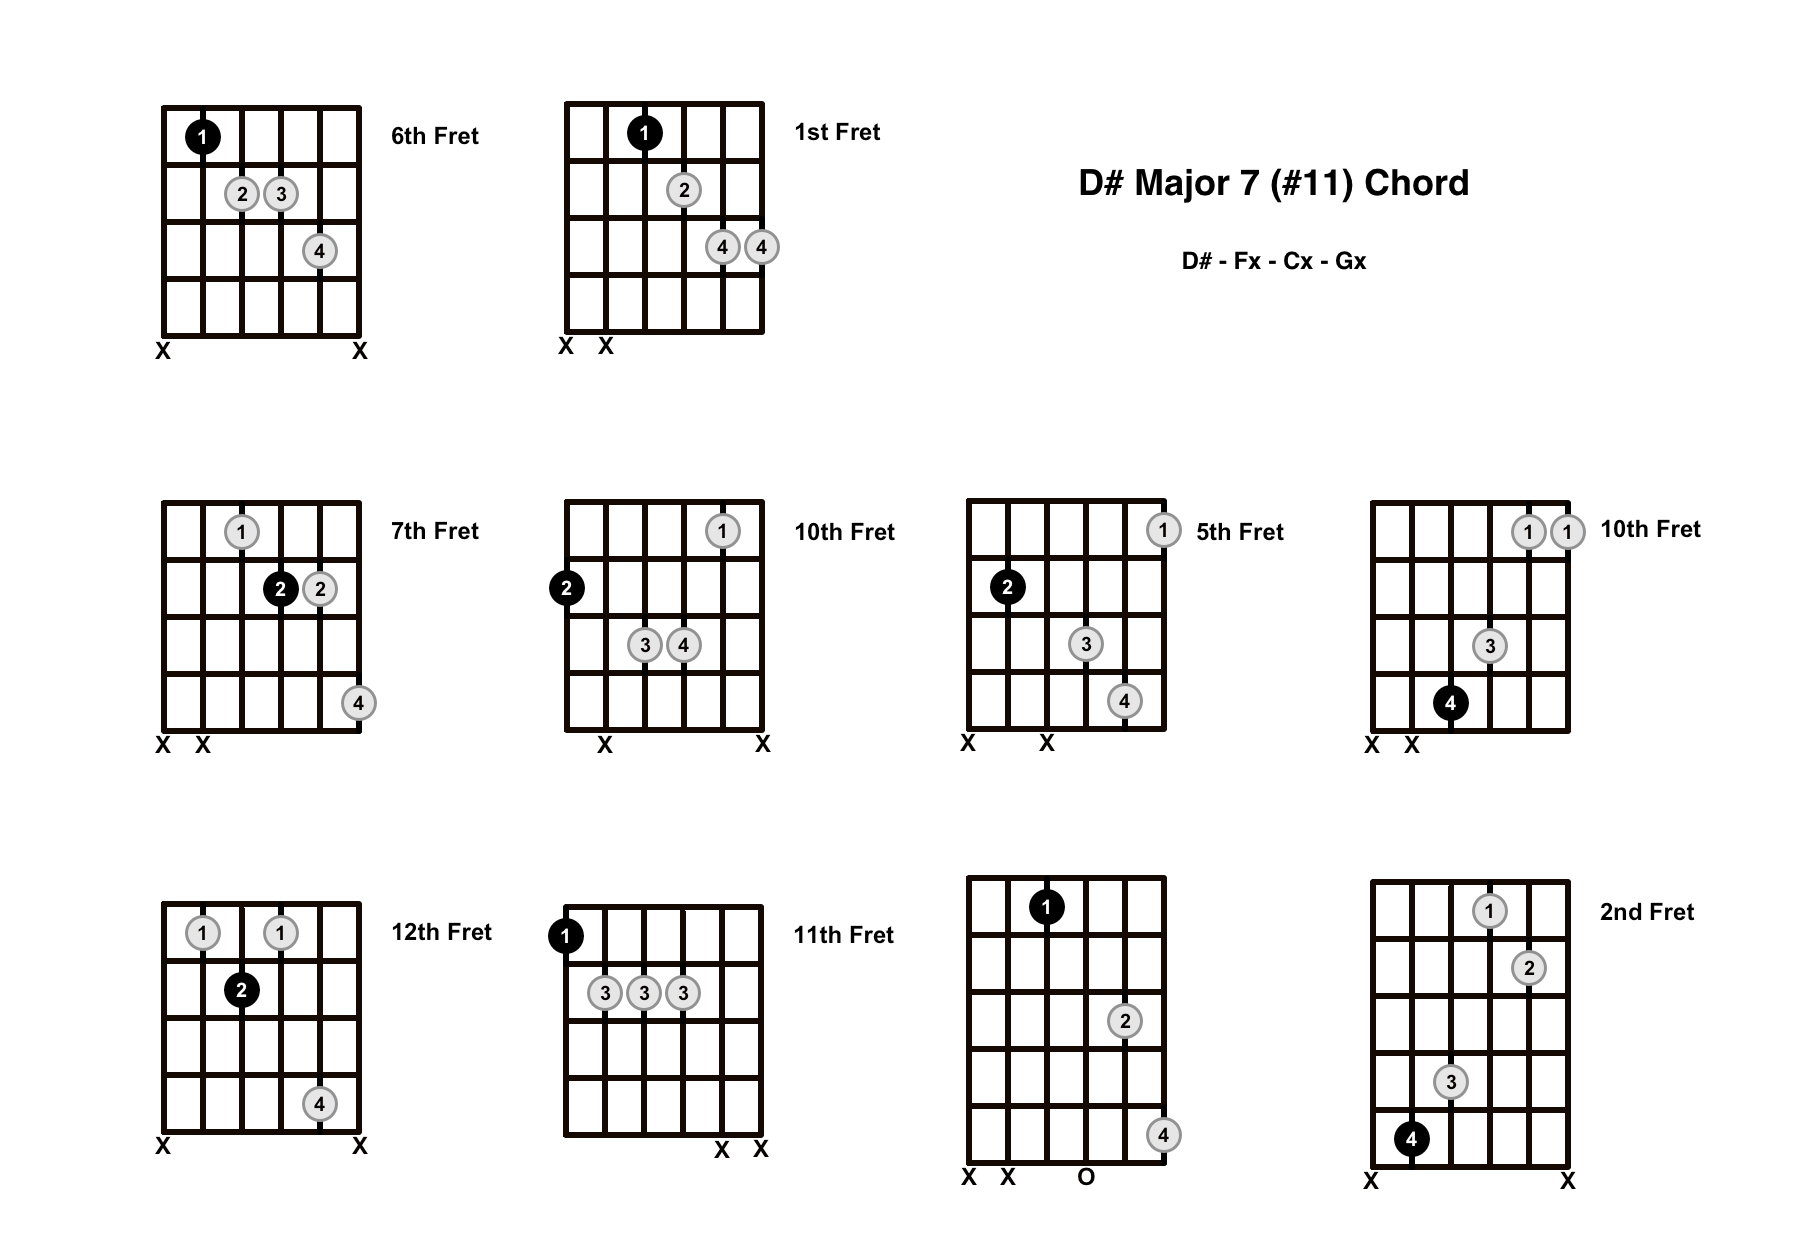 D#maj7#11 Chord On The Guitar (D Sharp Major 7 #11) – Diagrams, Finger Positions and Theory